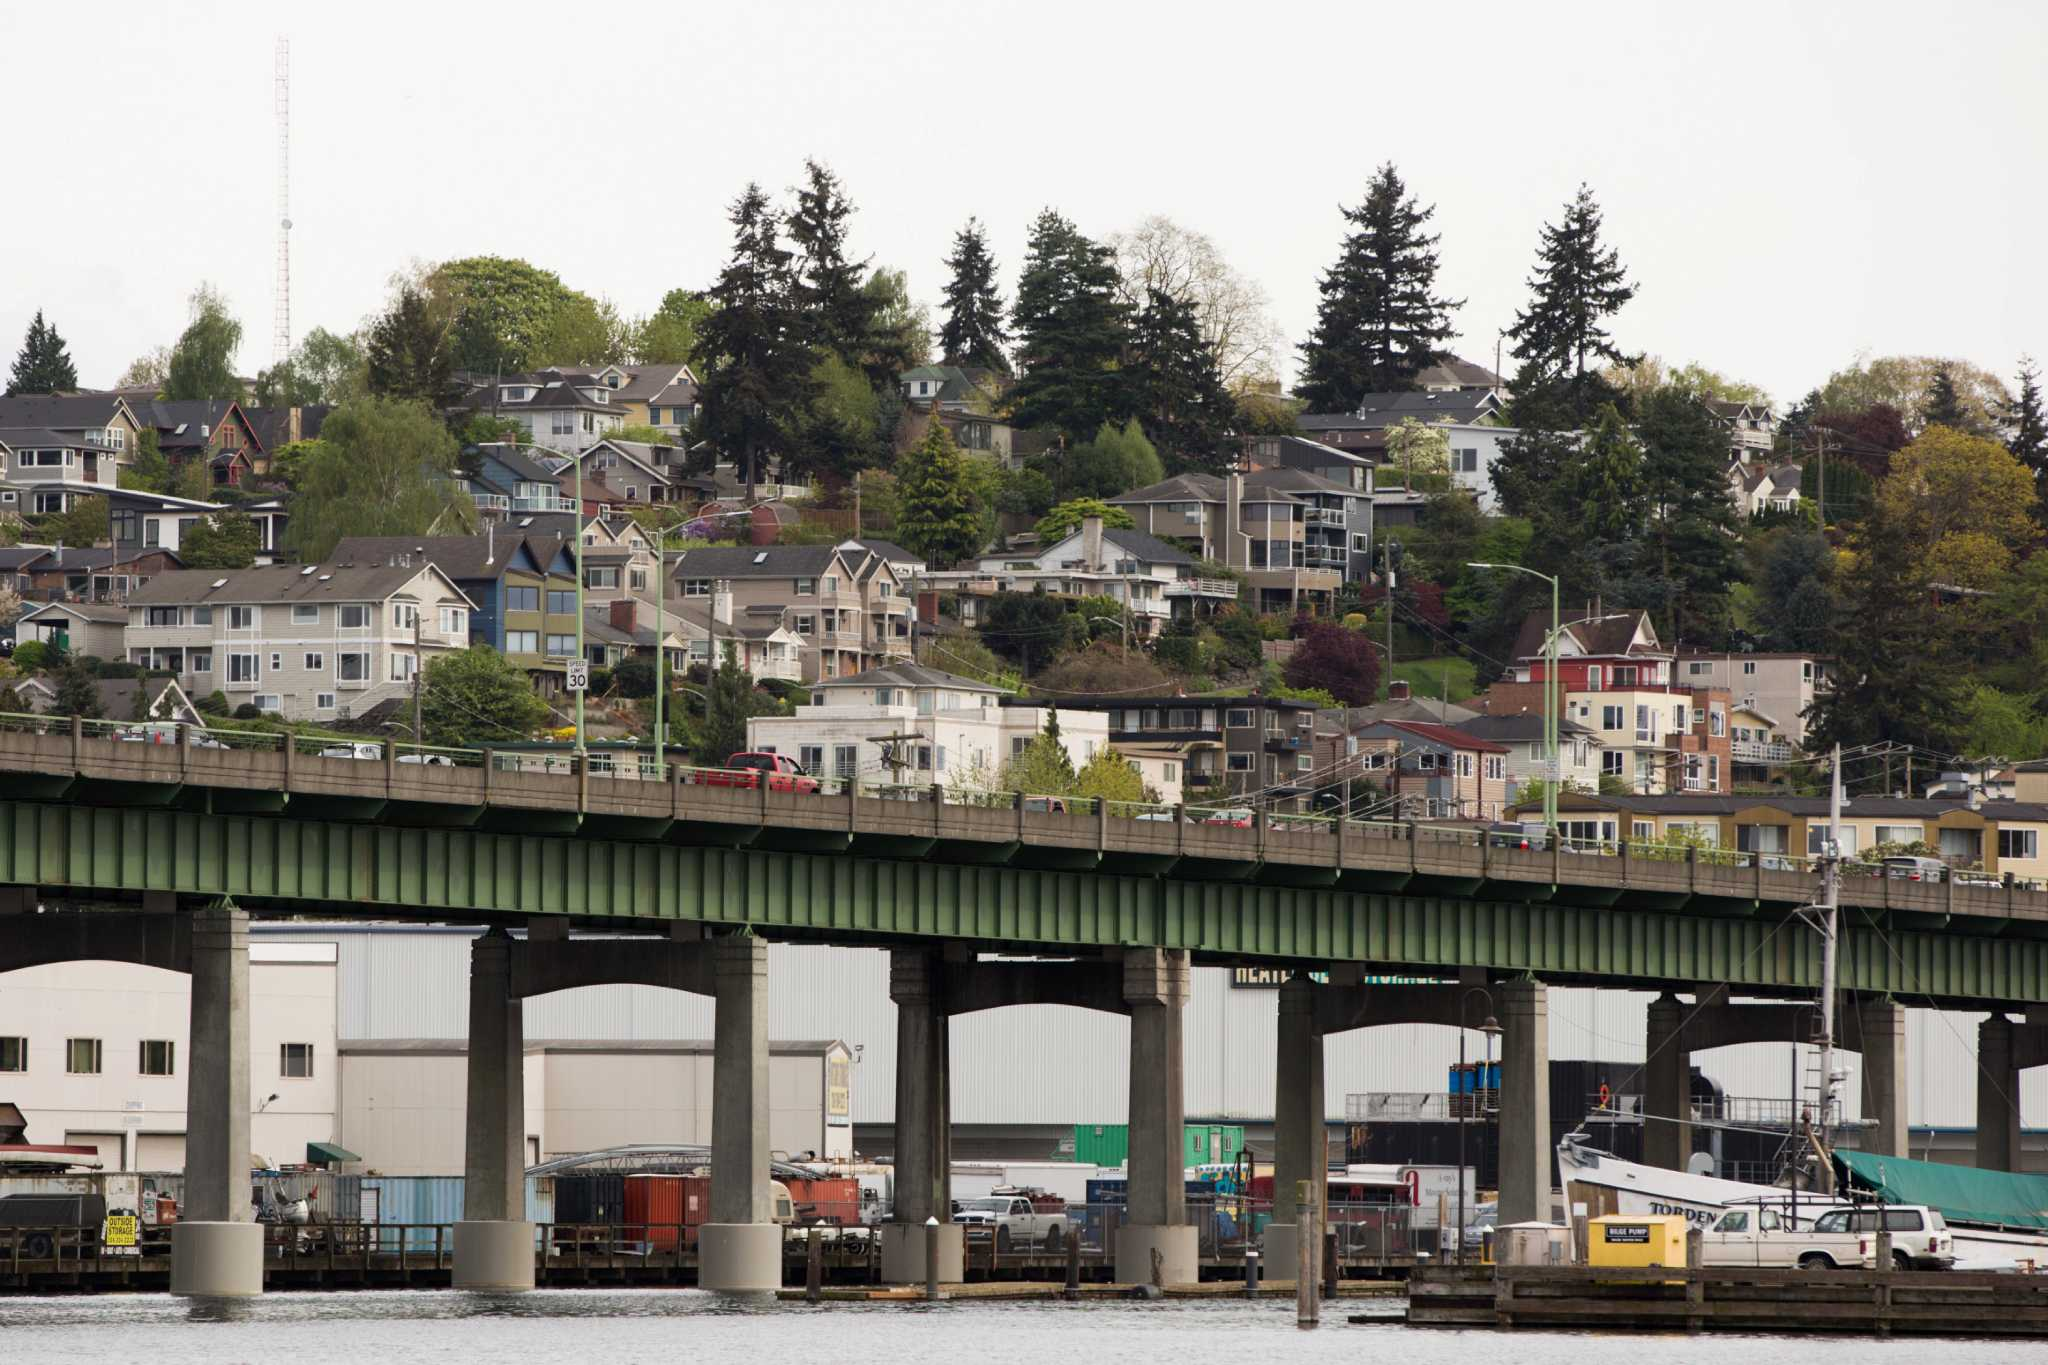 Last chance to share your thoughts on how Ballard Bridge should be updated with SDOT survey